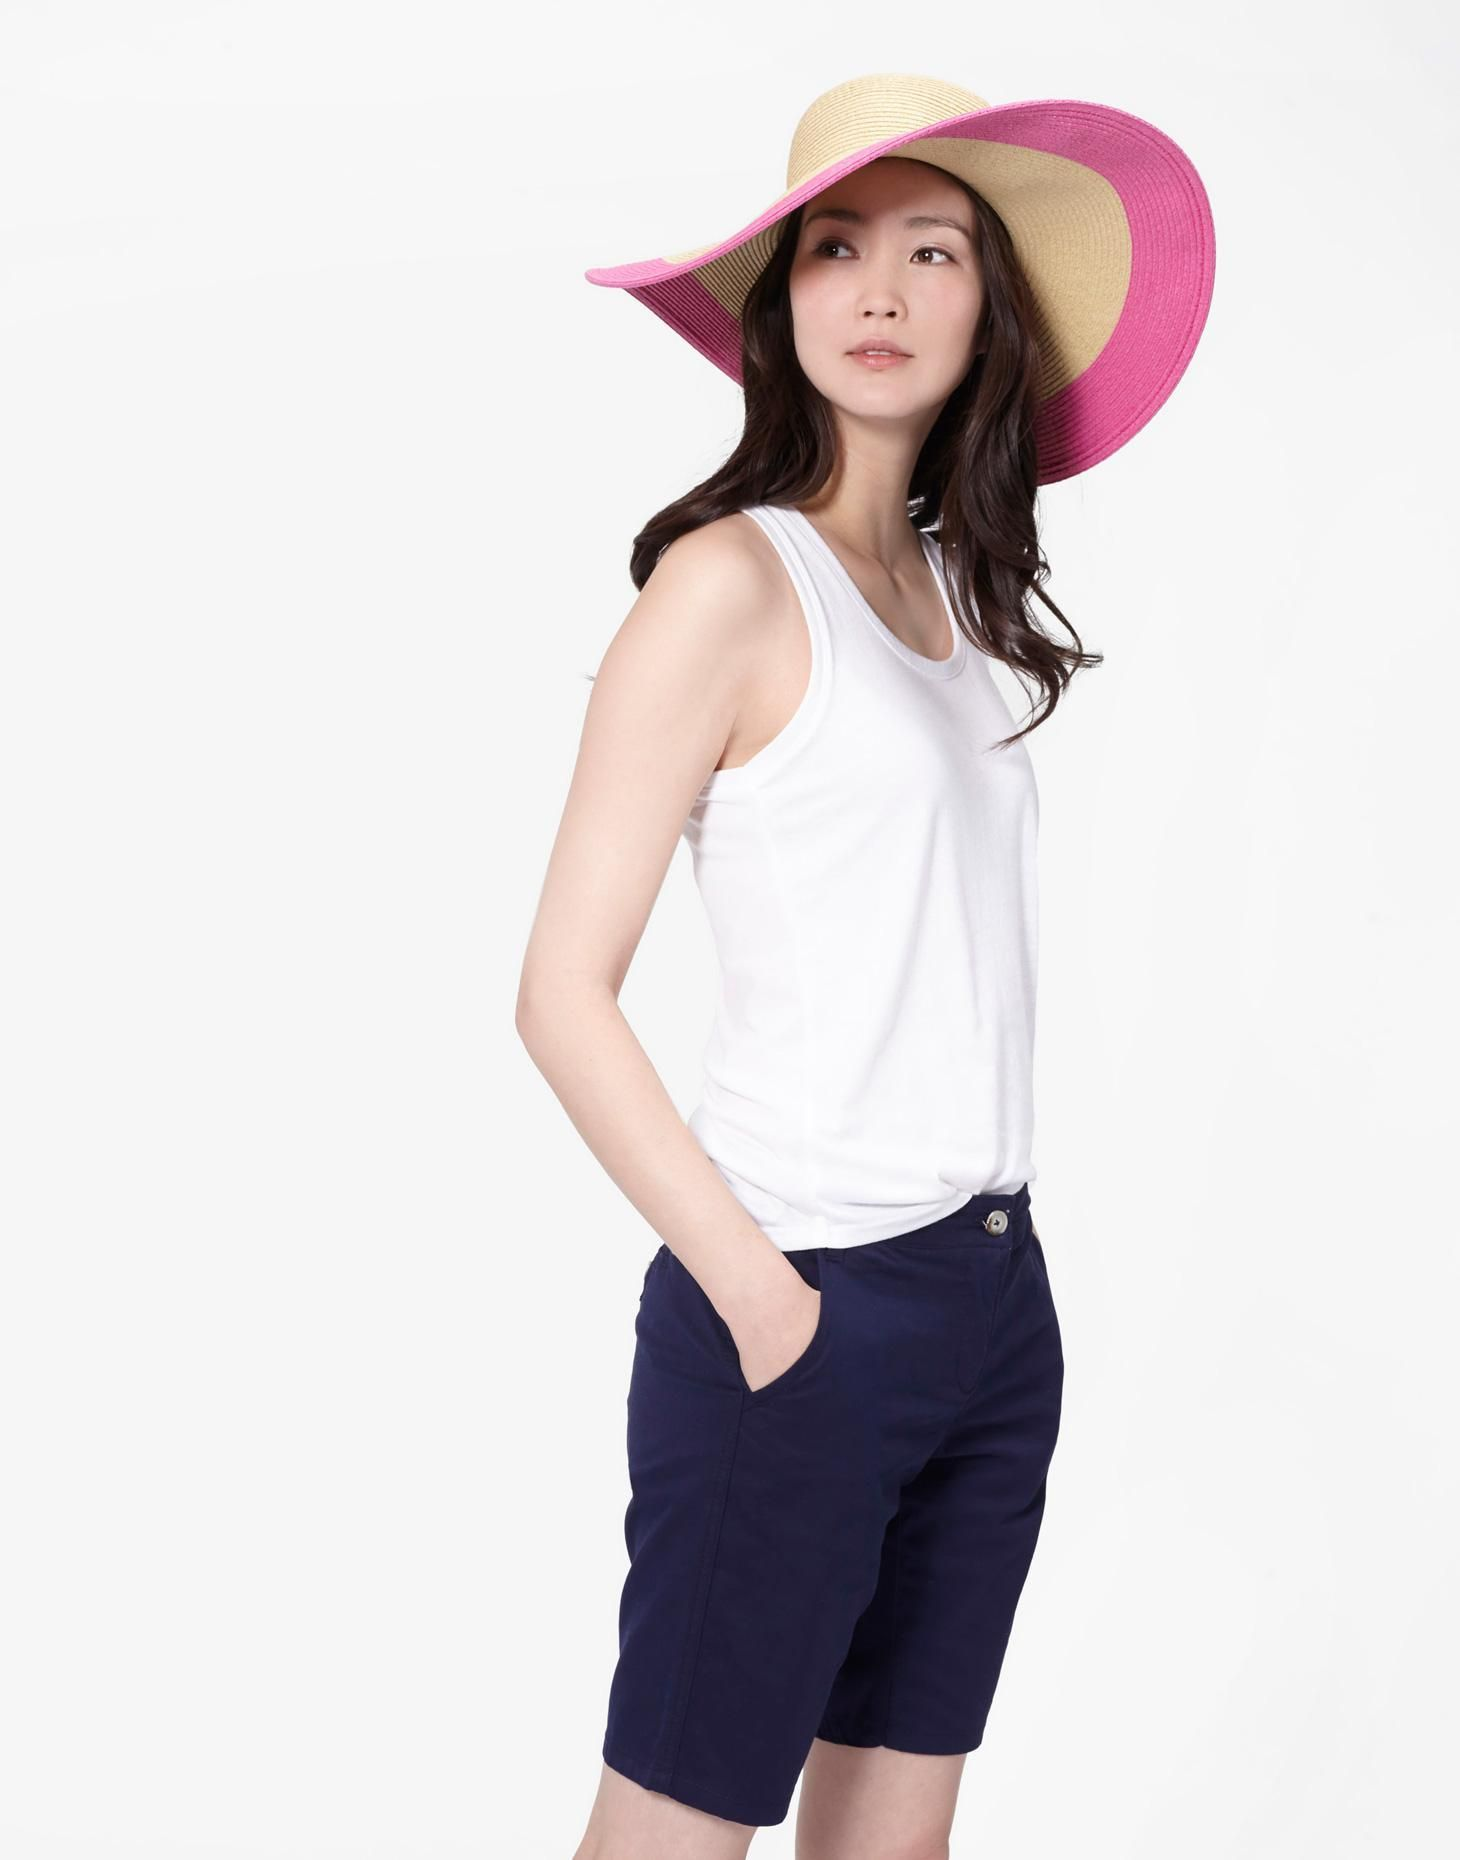 ccbf241e Mandy Wide Brimmed Sun Hat - Women's Holiday Shop | The Holiday ...